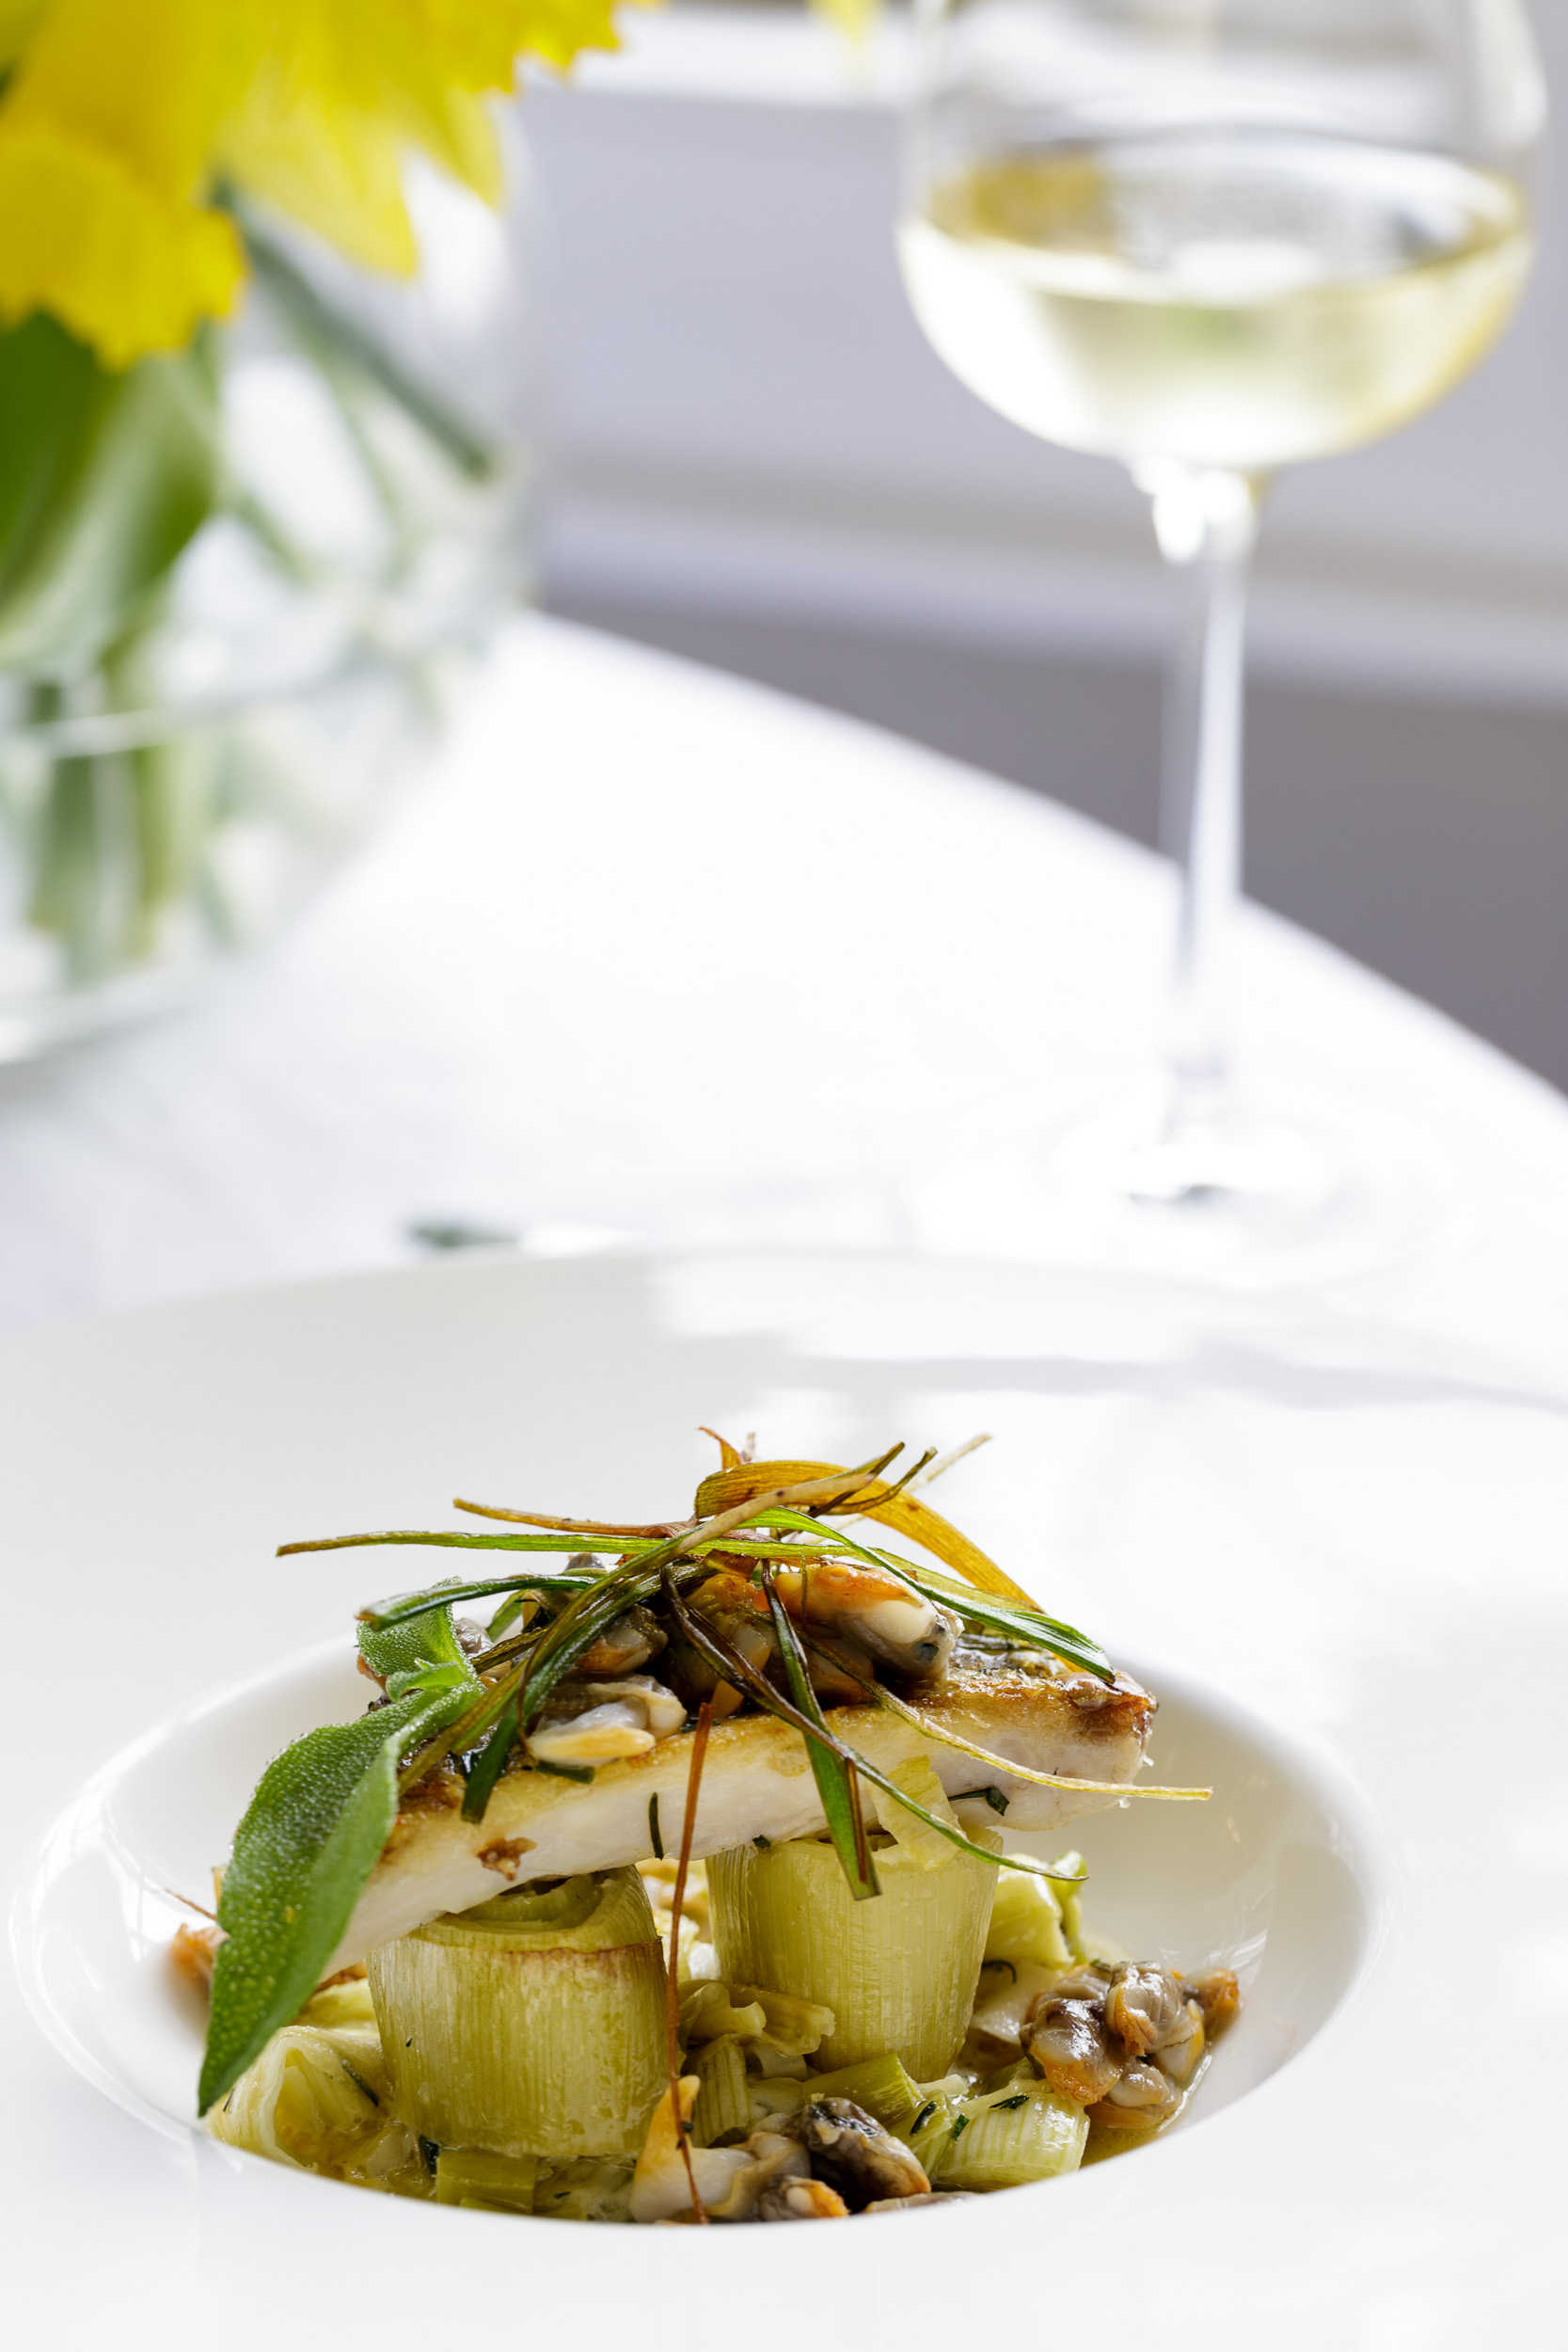 Food Photography at Hotel in Italy